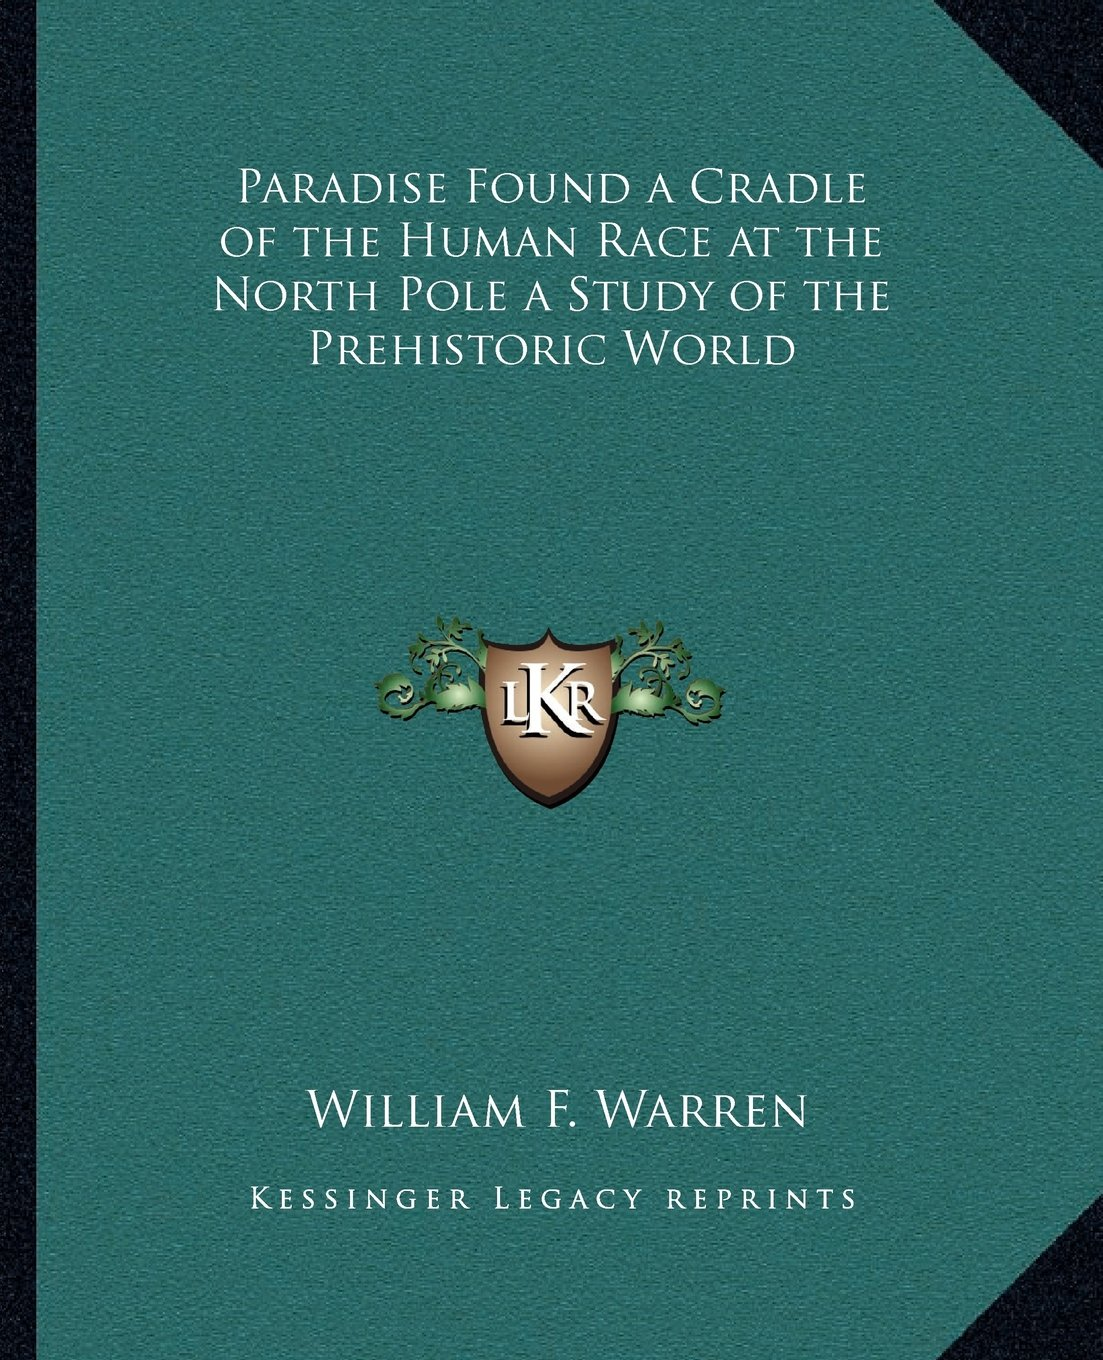 Paradise Found a Cradle of the Human Race at the North Pole a Study of the Prehistoric World pdf epub